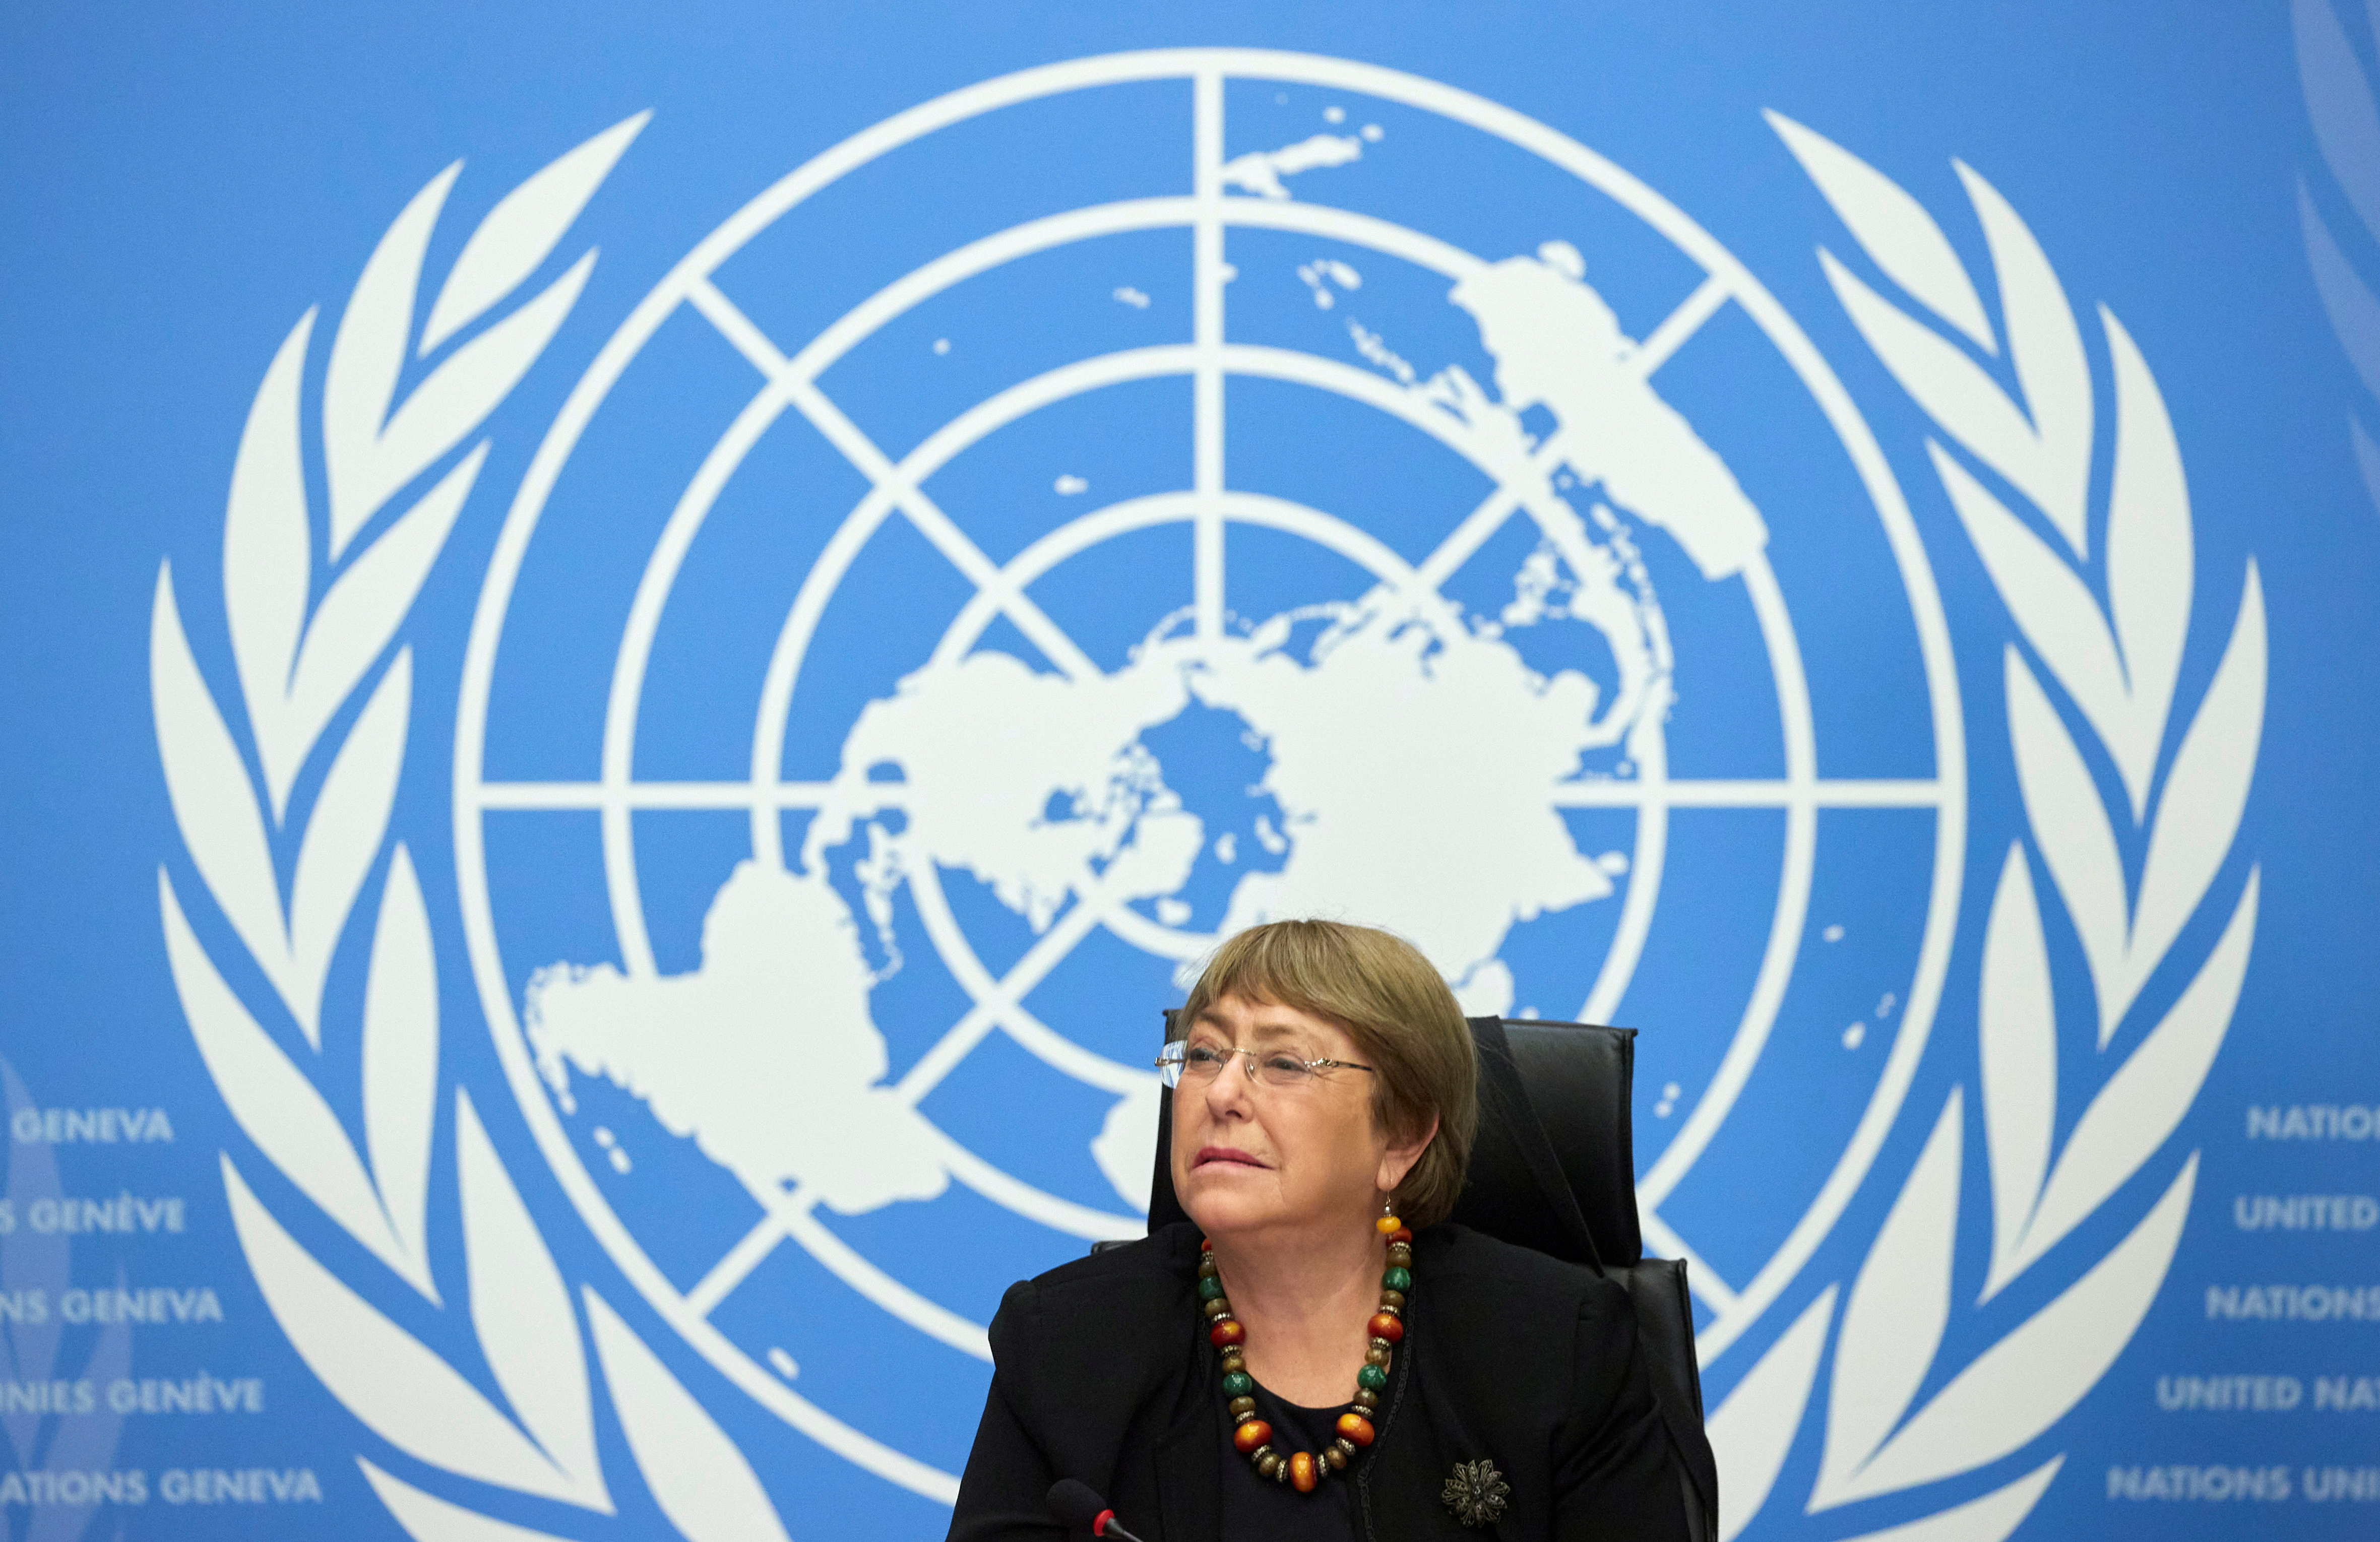 U.N. High Commissioner for Human Rights Michelle Bachelet attends a news conference at the European headquarters of the United Nations in Geneva, Switzerland, December 9, 2020. REUTERS/Denis Balibouse/File Photo